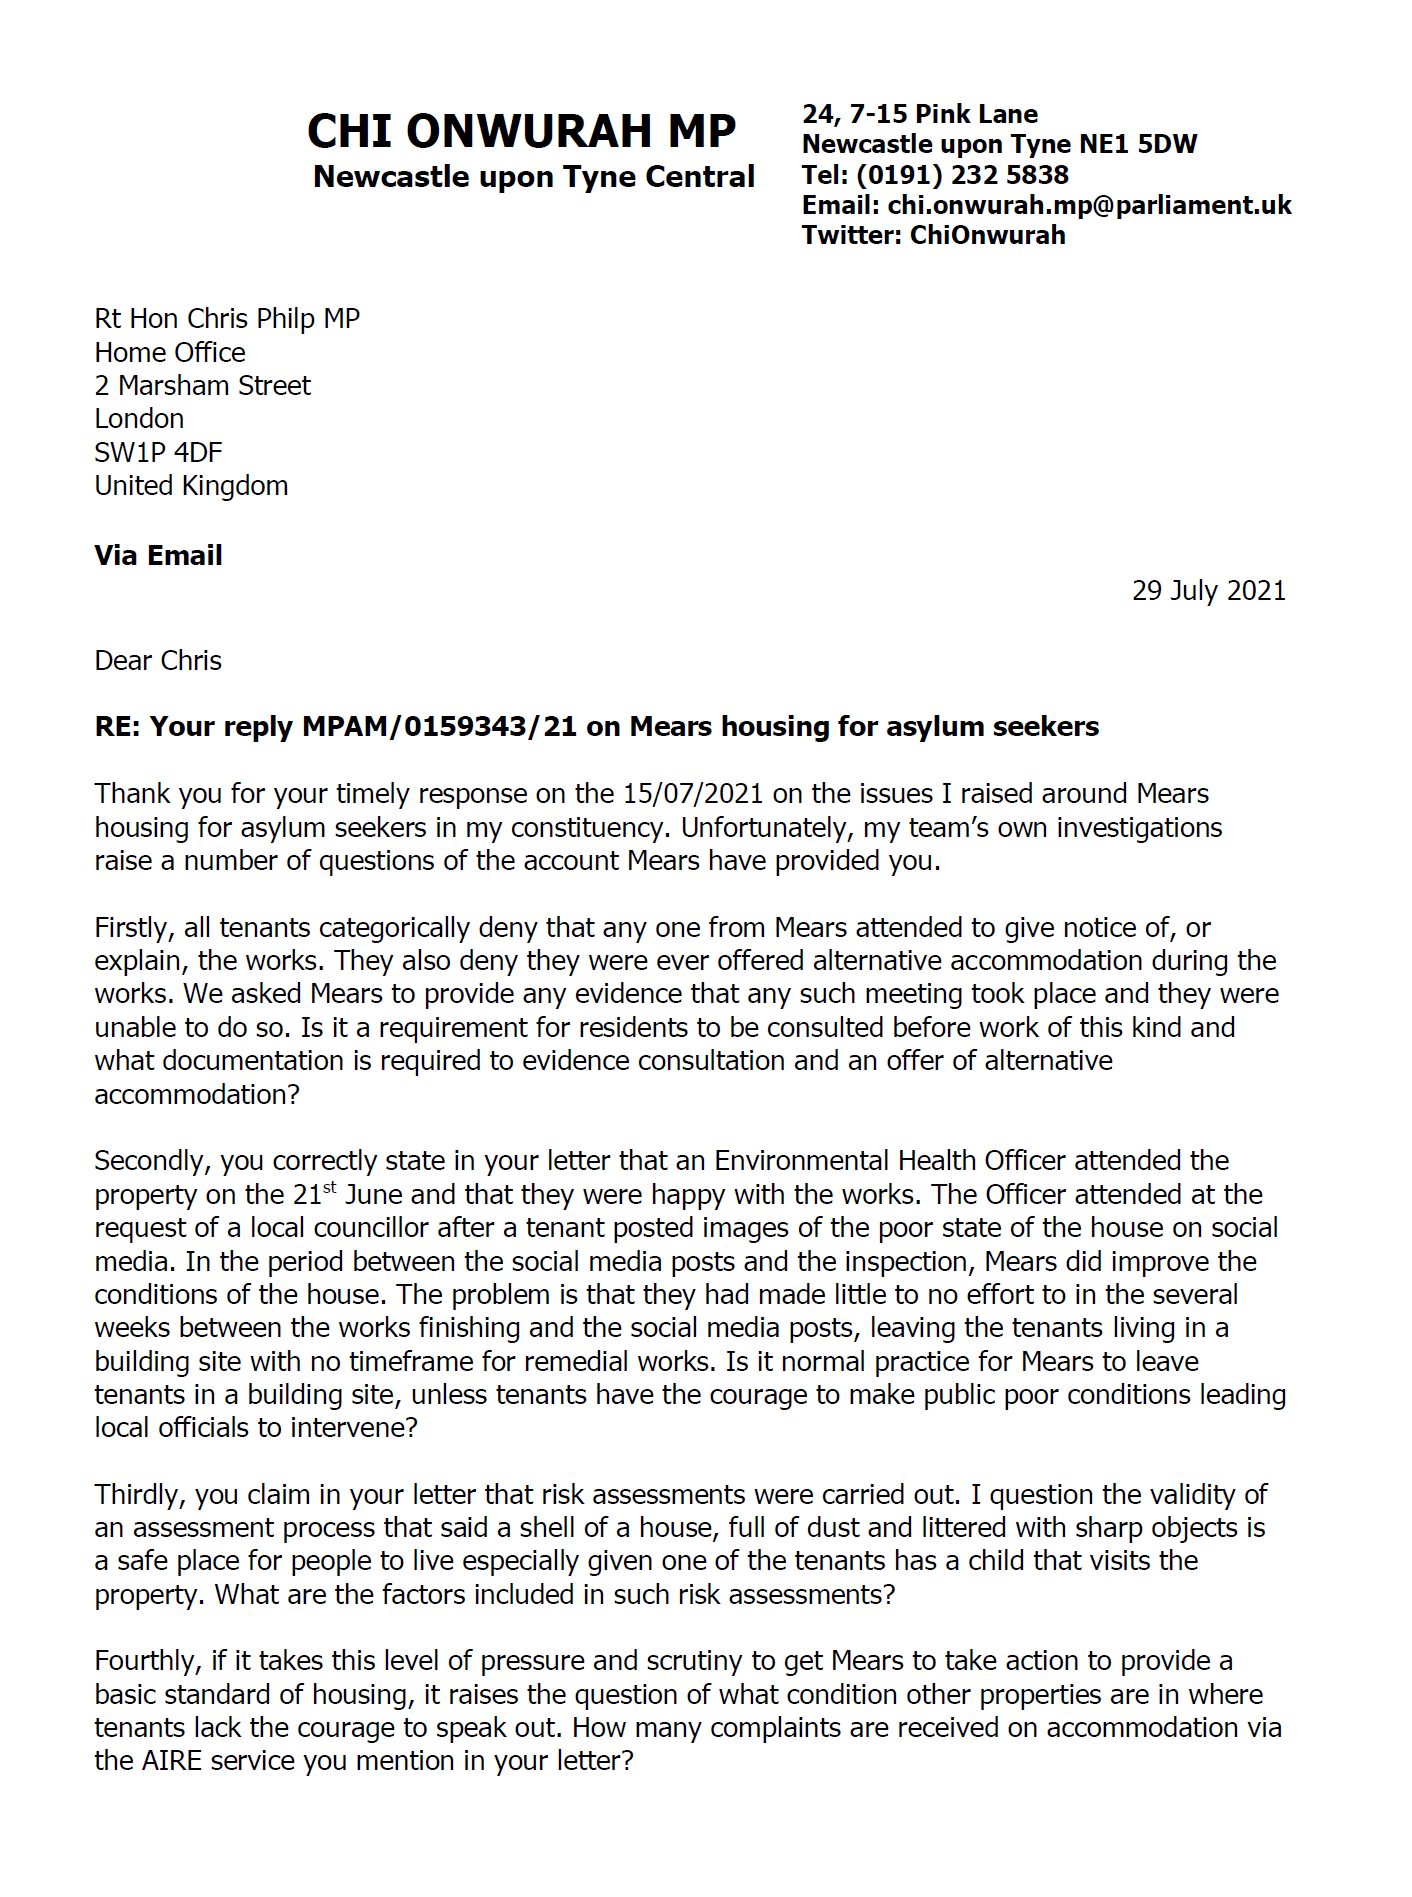 Chi Responds to Minister on Asylum Seeker Housing Conditions